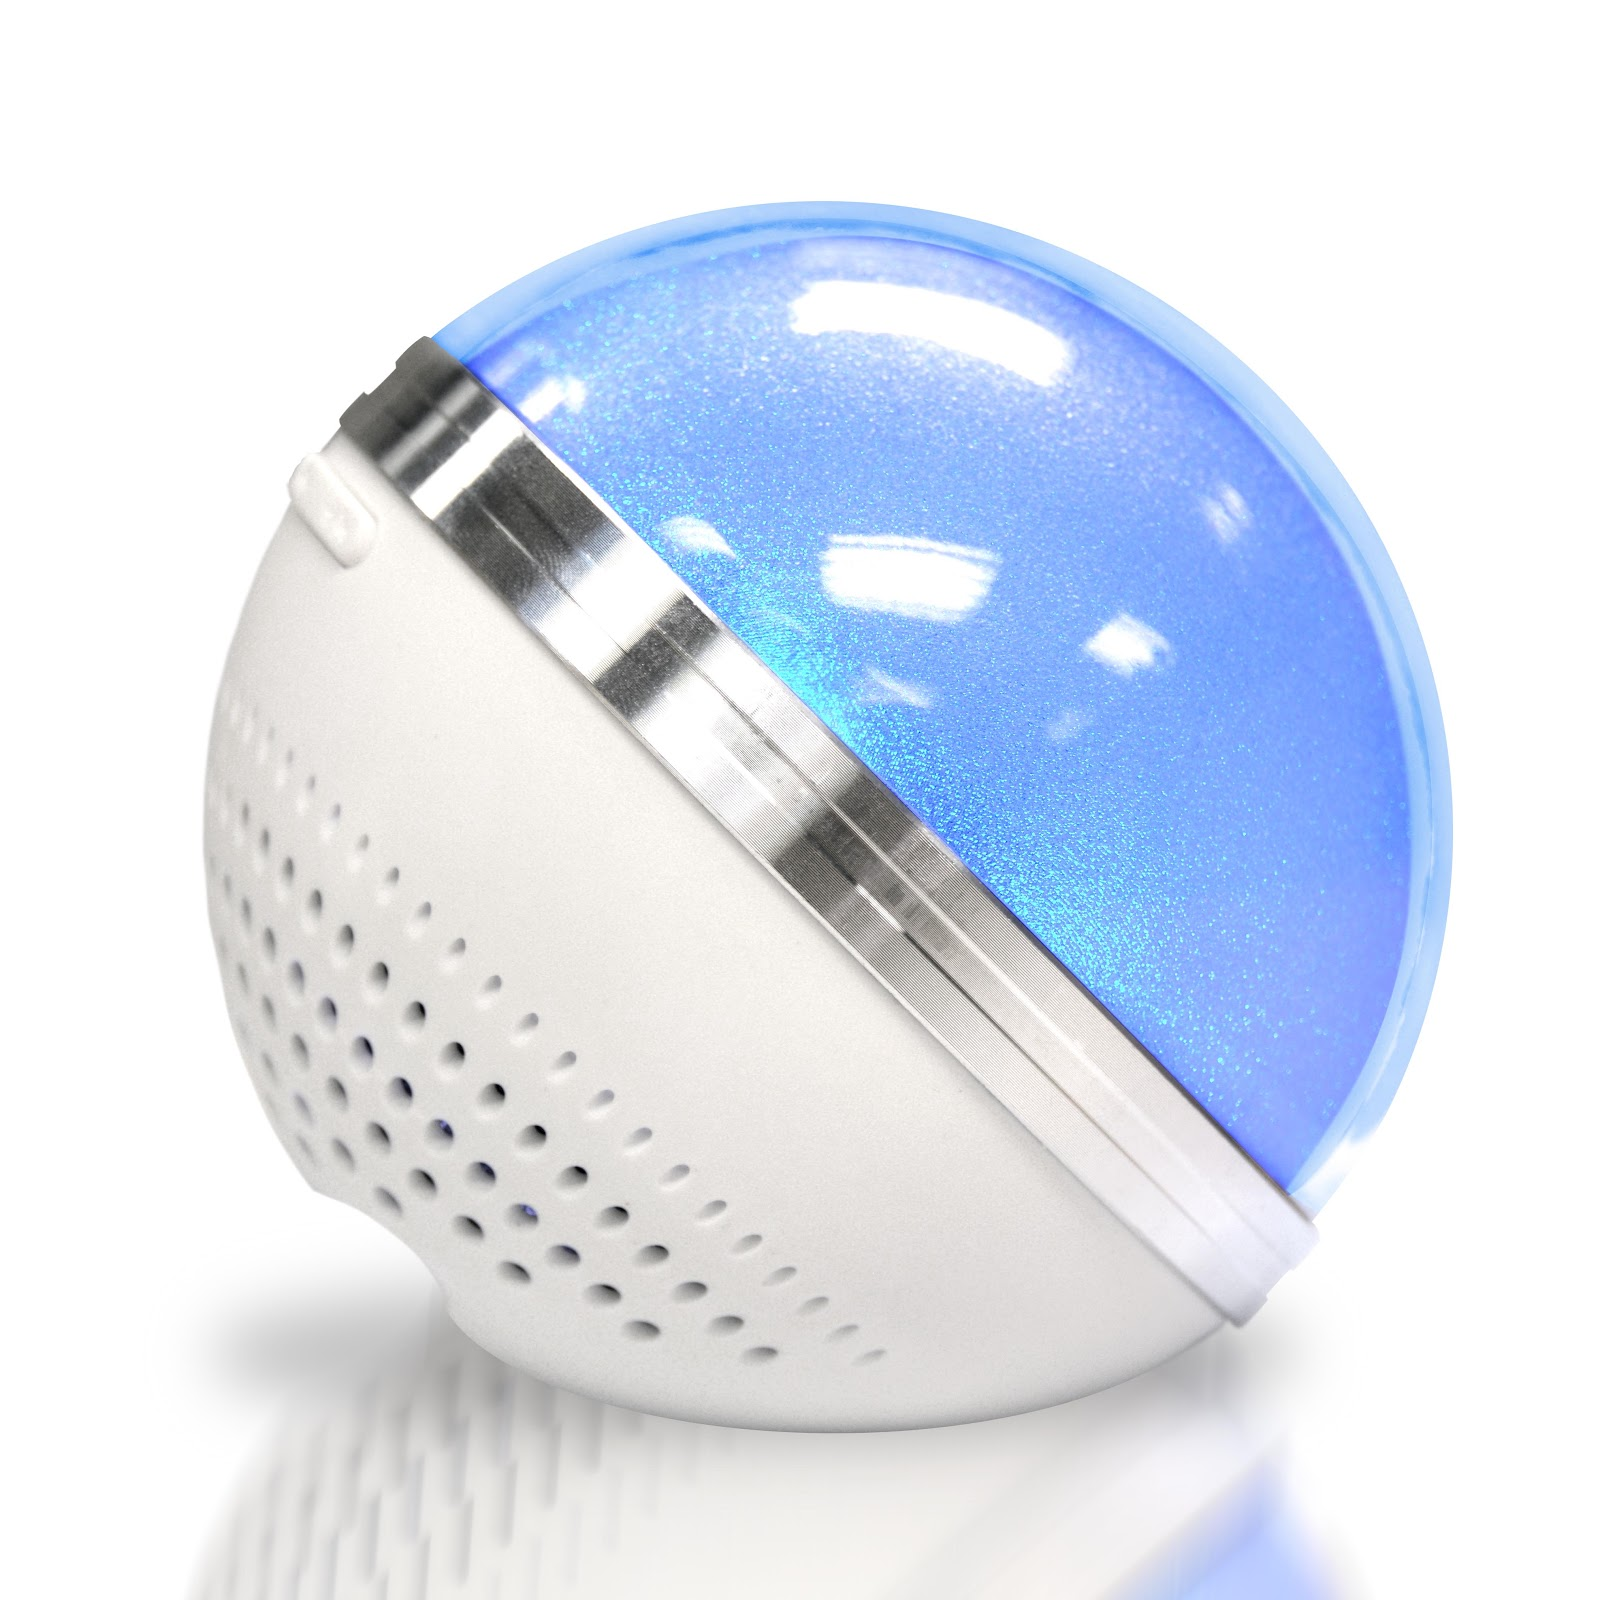 A New Way To Listen To Music Soundorb By Blisslights